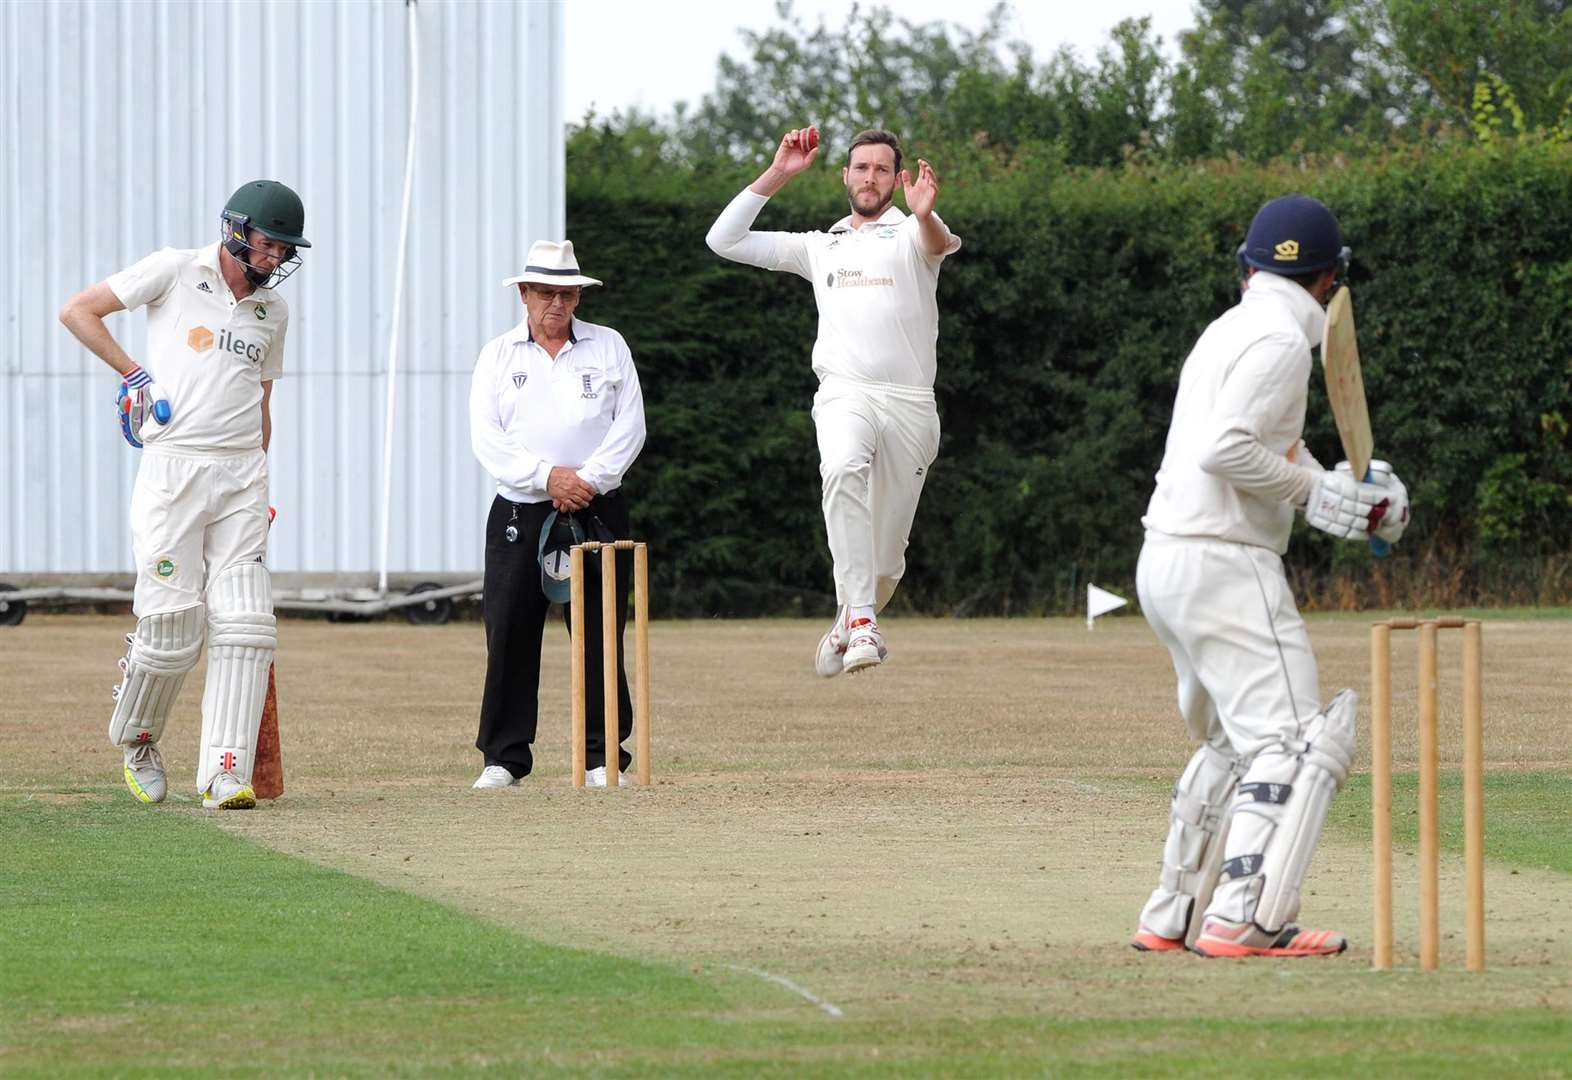 Batting once again dents Walsham's hopes of victory